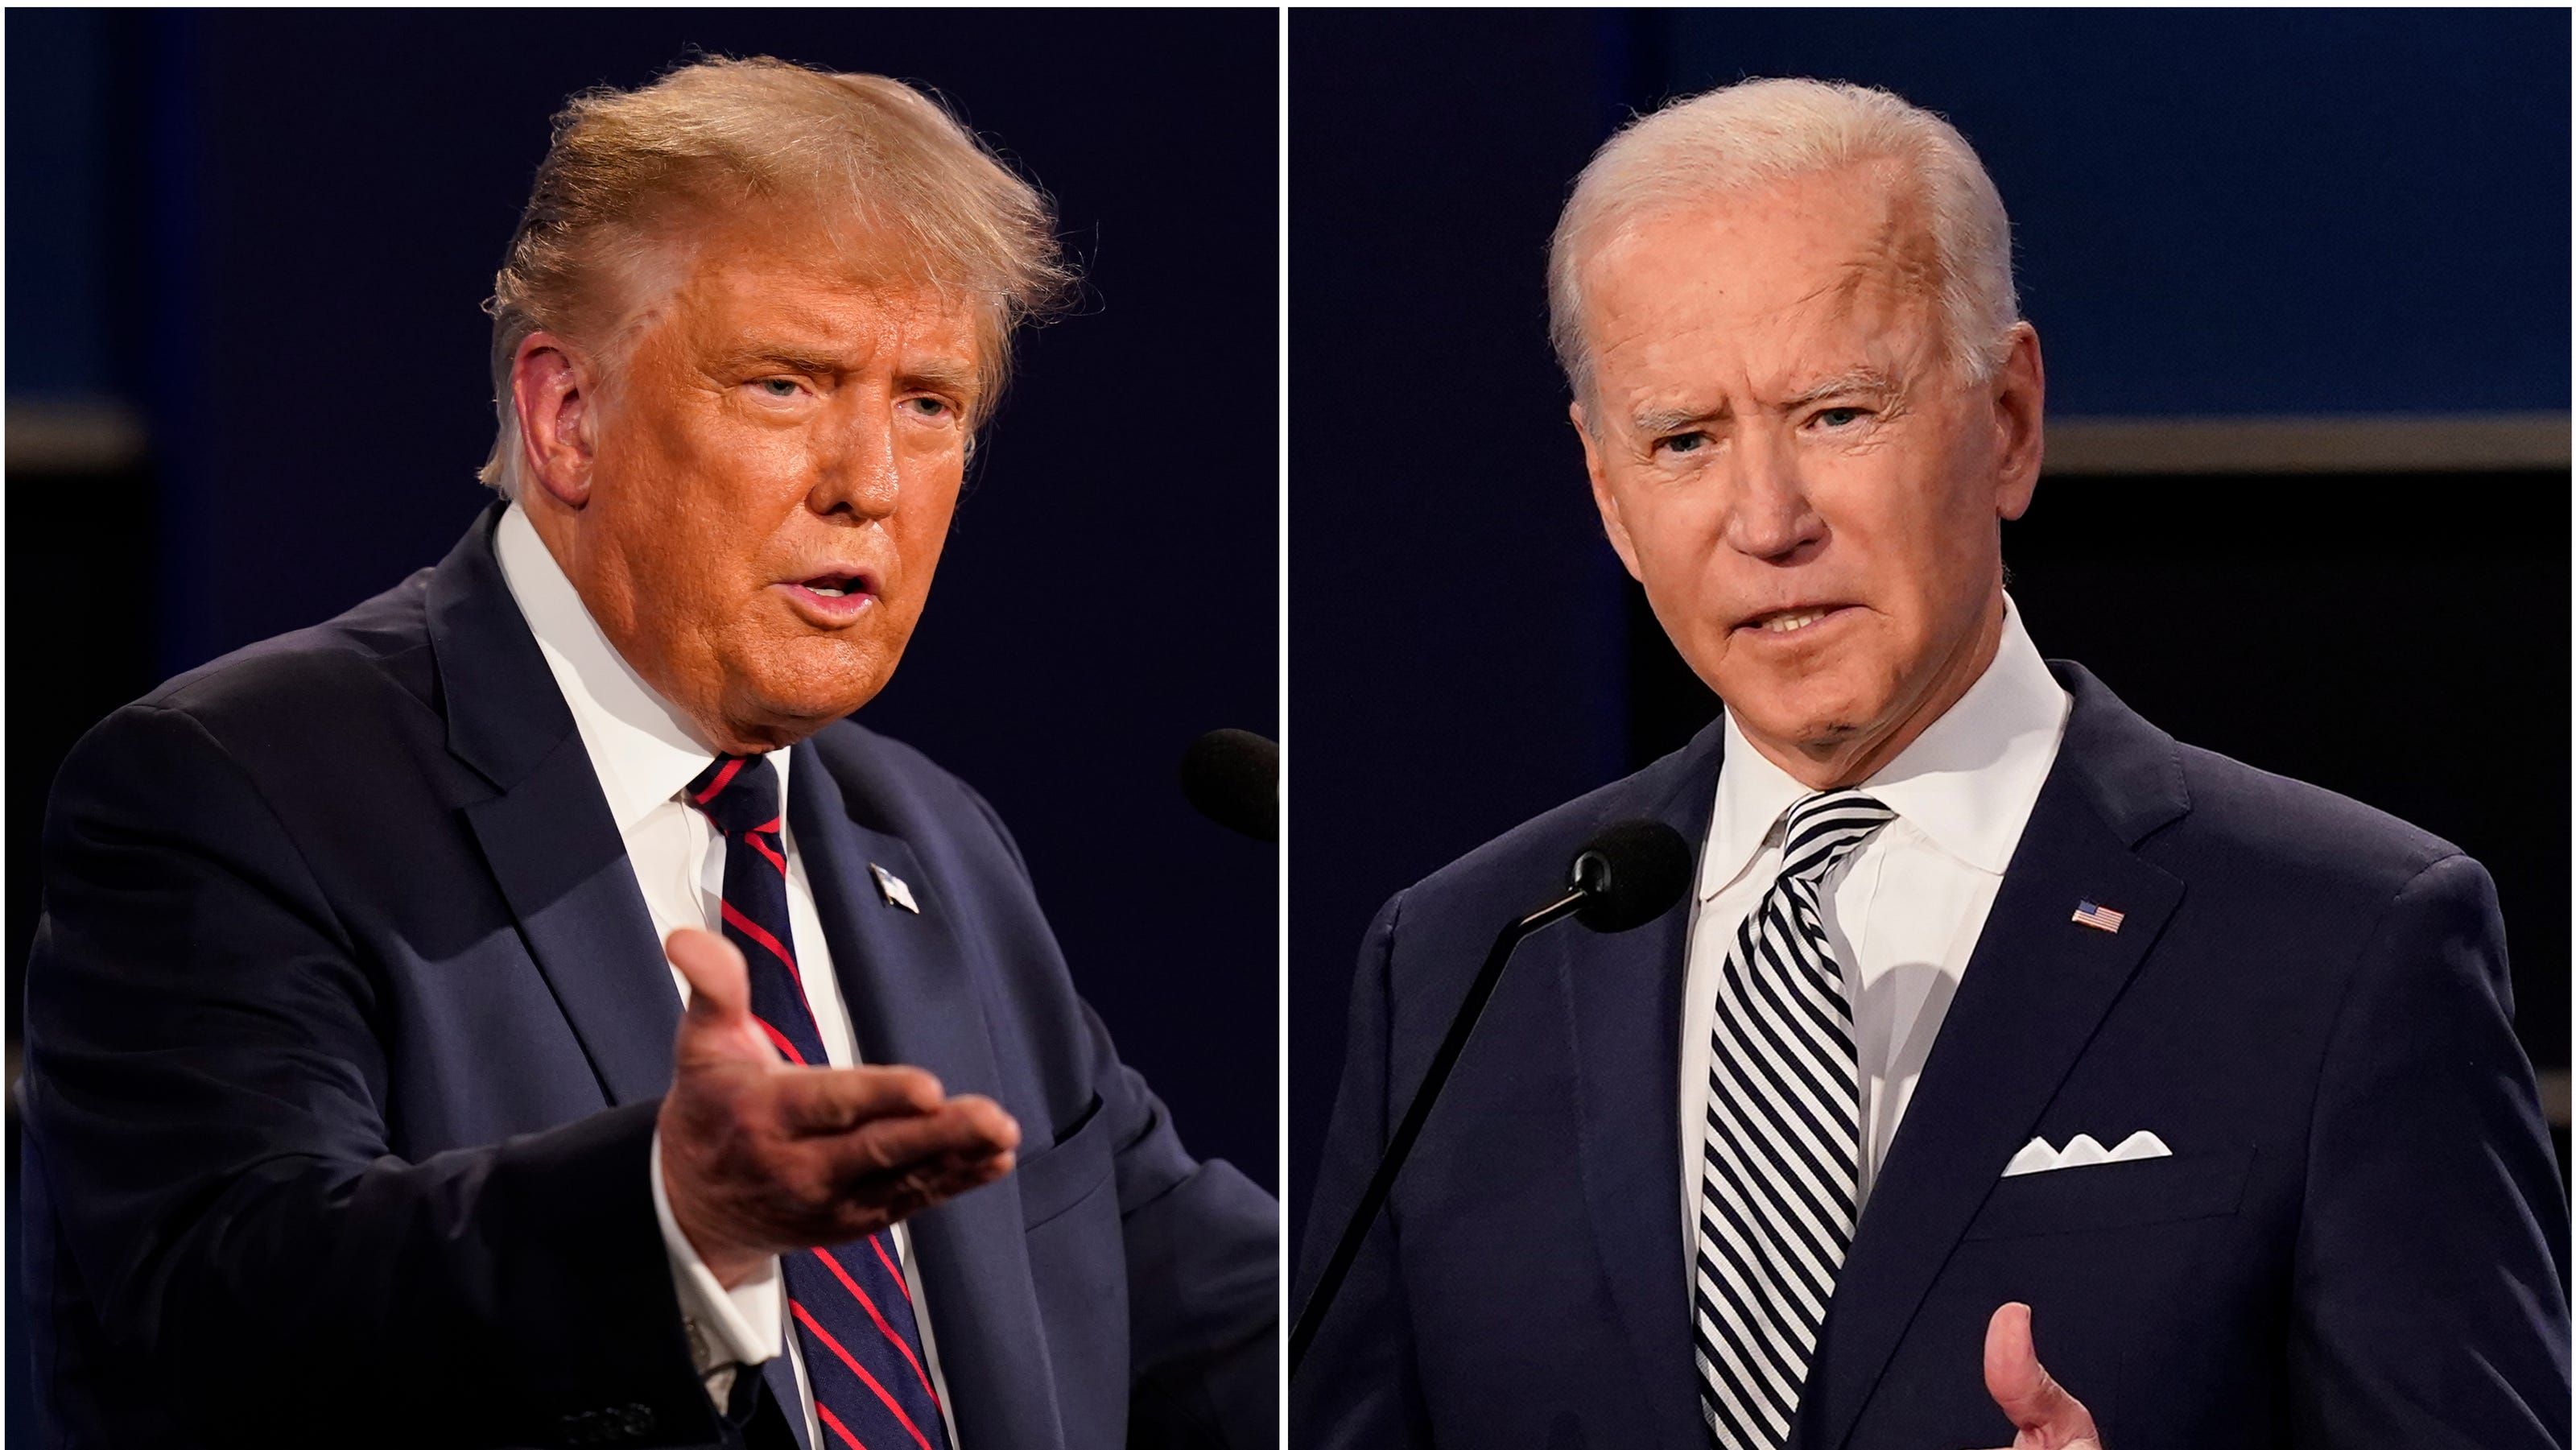 Trump to lose presidential Twitter handle to Biden on Inauguration Day